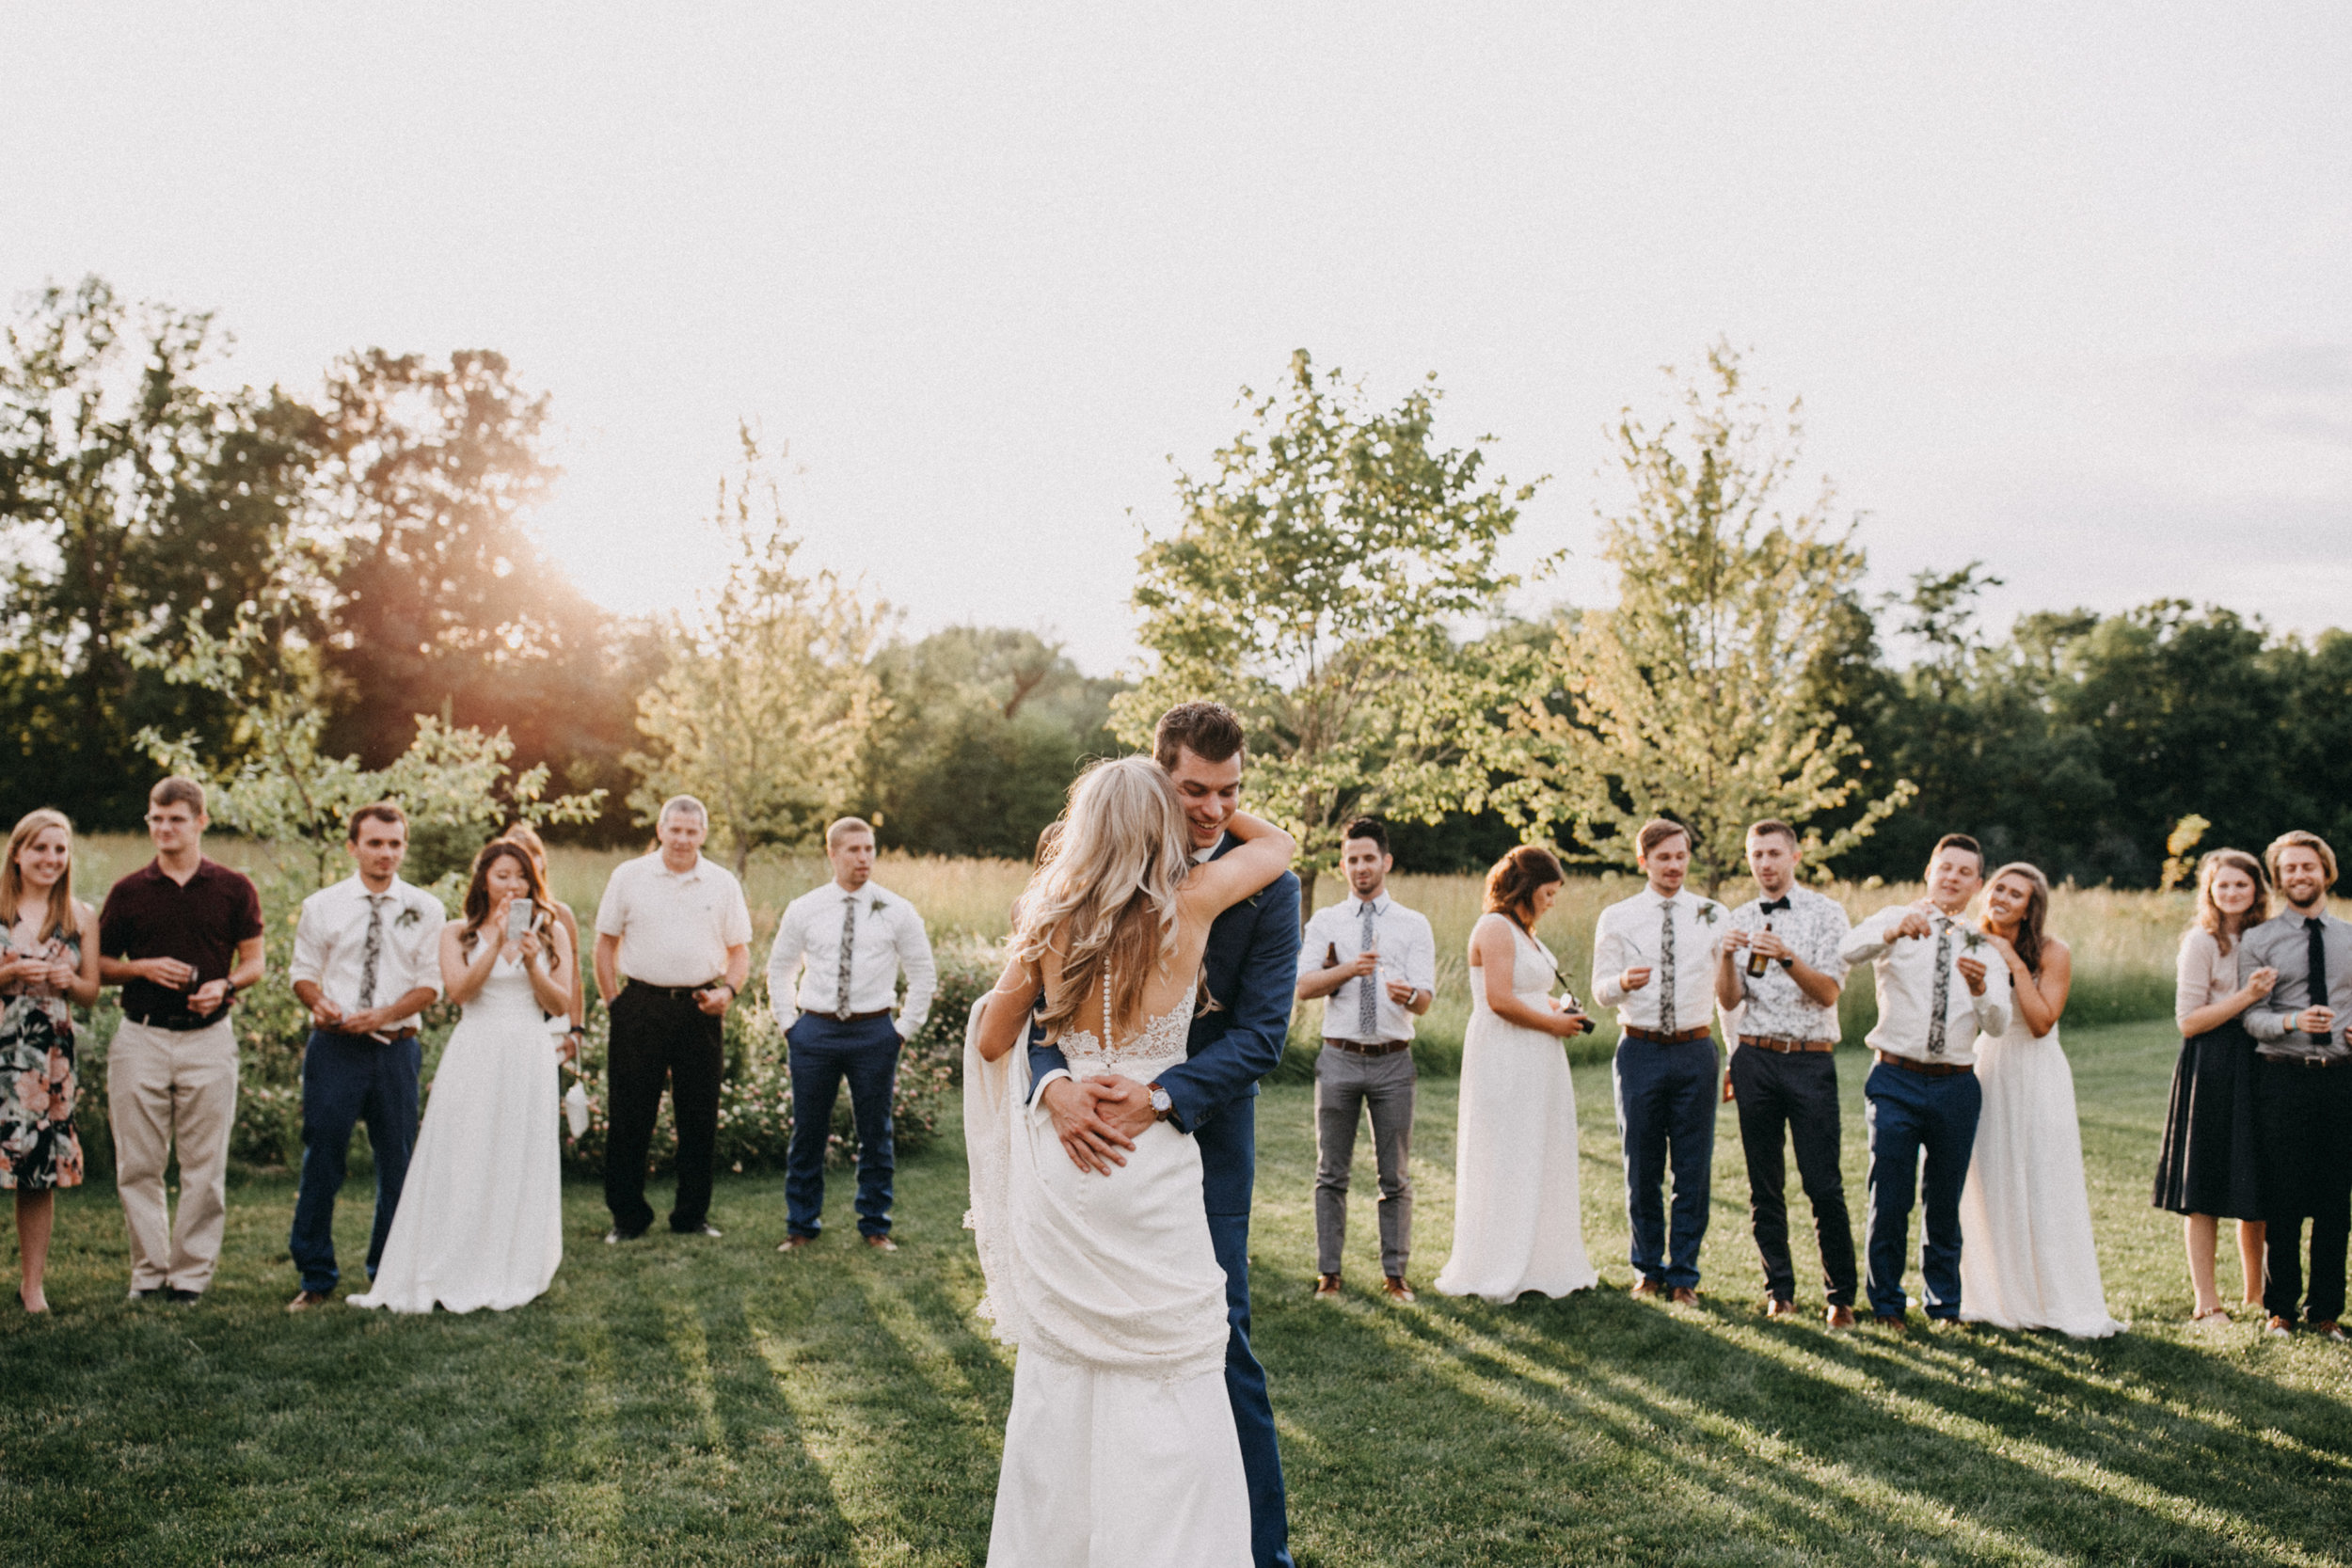 Sparkler wedding dance at Creekside Farm in Rush City, Minnesota photographed by Britt DeZeeuw